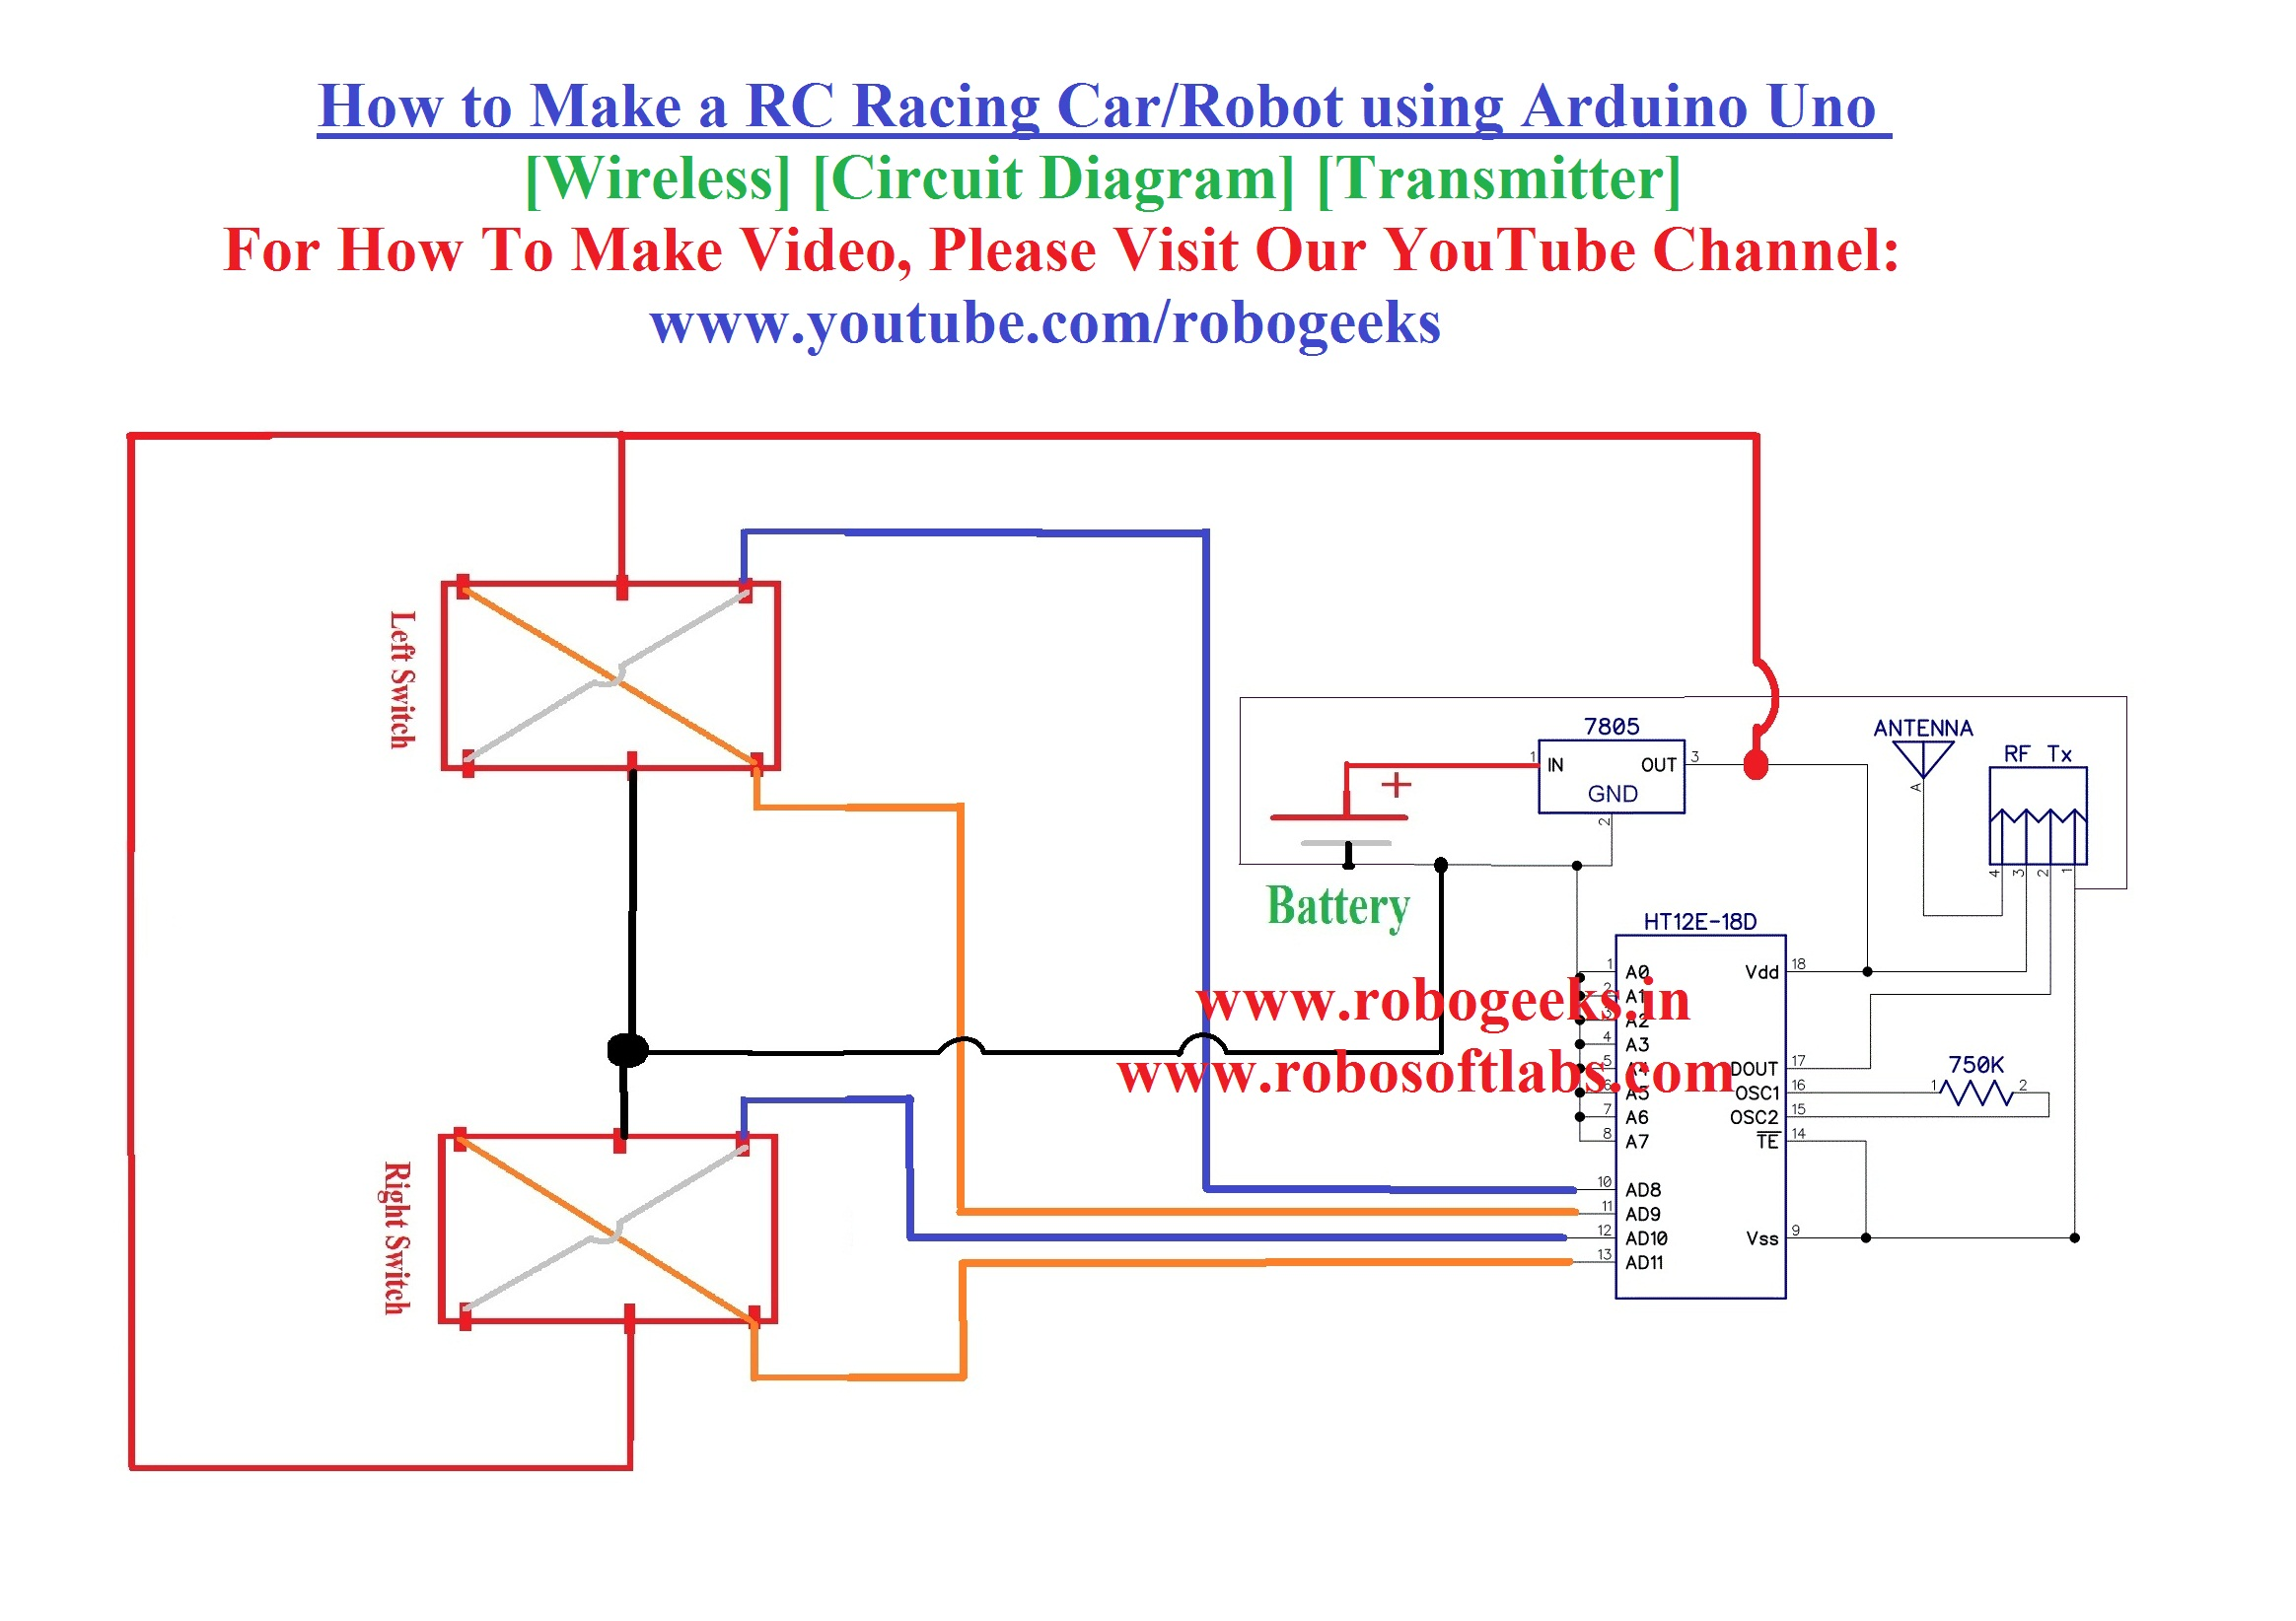 How To Make A Rc Racing Car Robot Using Arduino Uno Wireless Wiring Diagram Transmitter Robogeeks